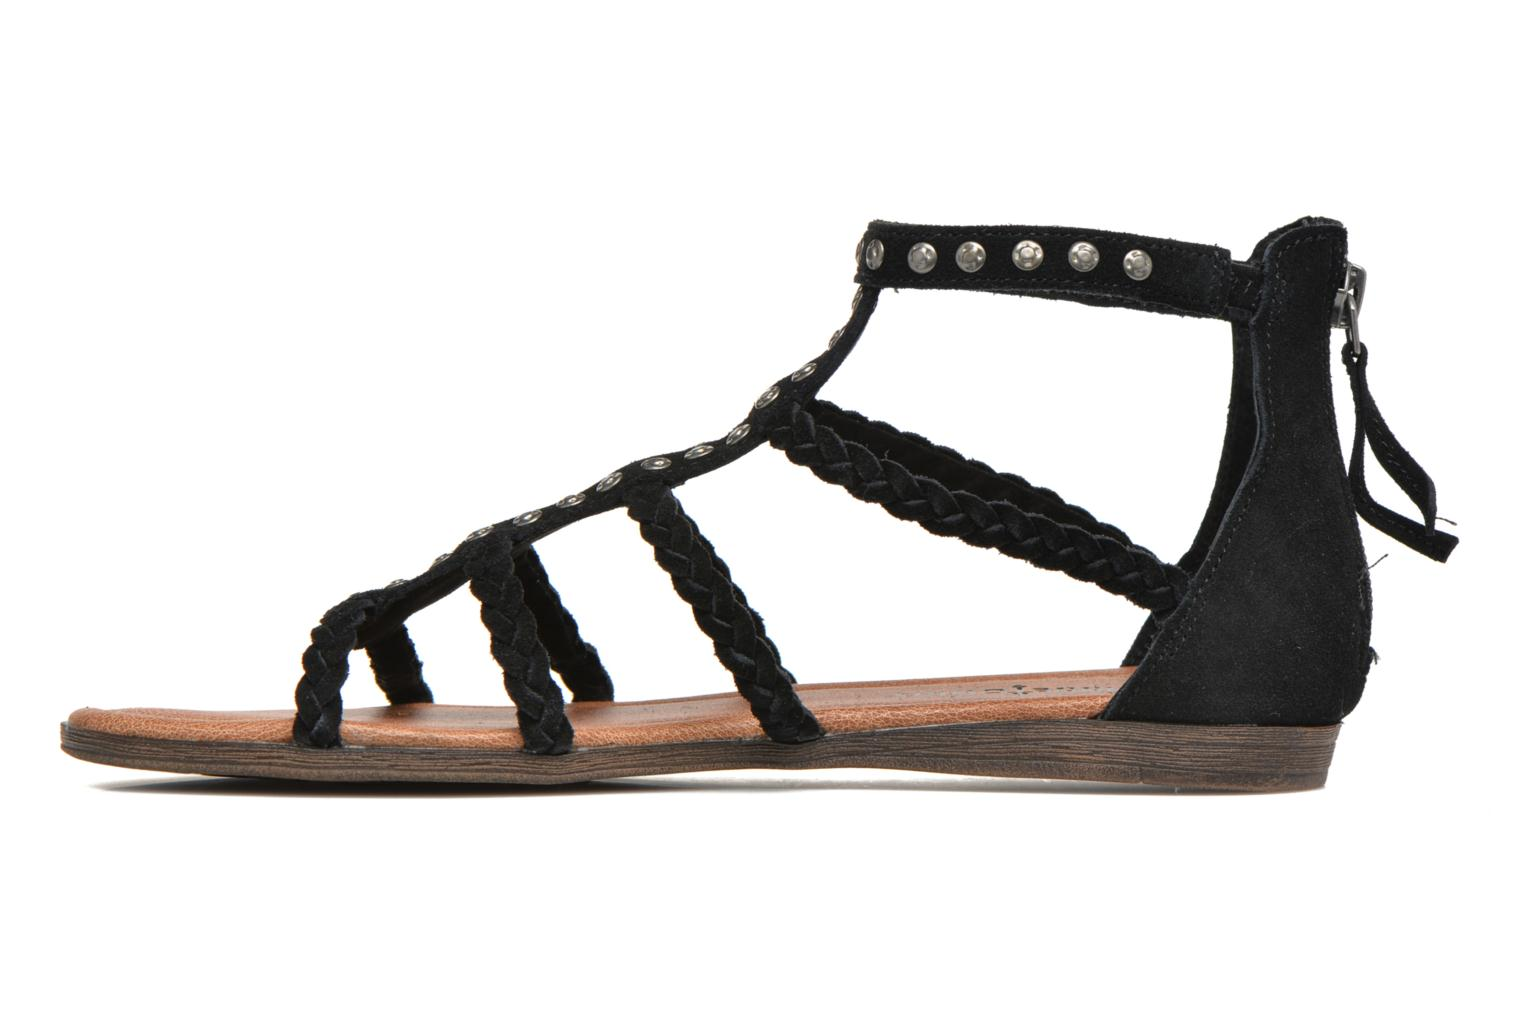 Catalina Sandal Black Suede